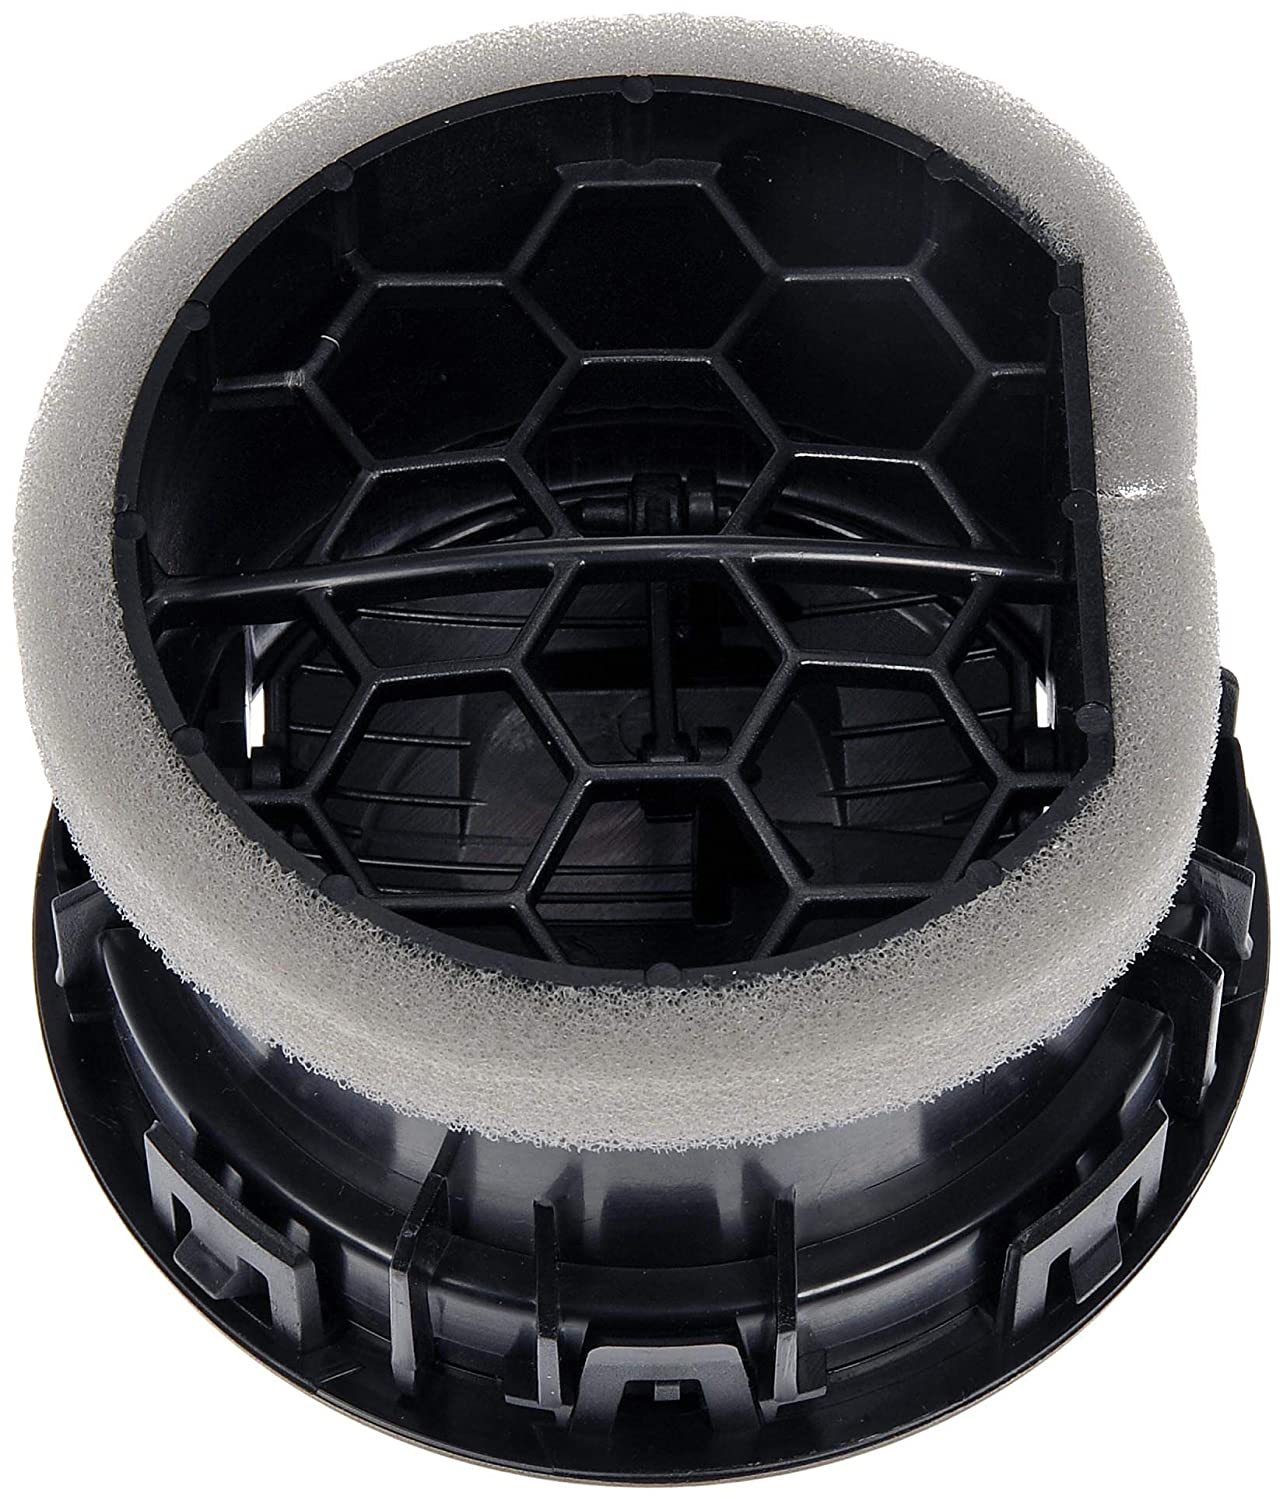 Dorman 74933 Dashboard Air Vent for Select Ford Models